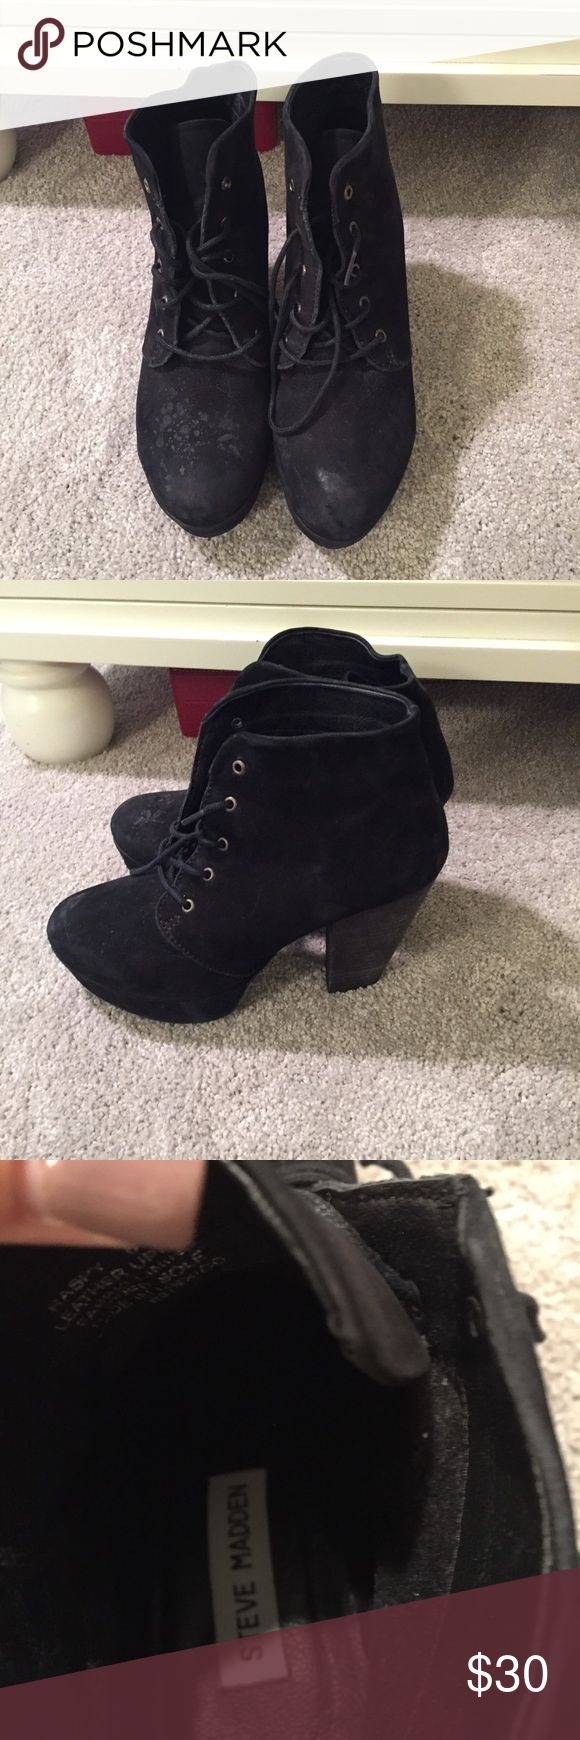 Steve Madden Raspy boots SM boots- look like the Jeffrey Campbell booties. Worn a couple of times- in good condition- as some water marks on them but will probably come off with cleaning Steve Madden Shoes Ankle Boots & Booties